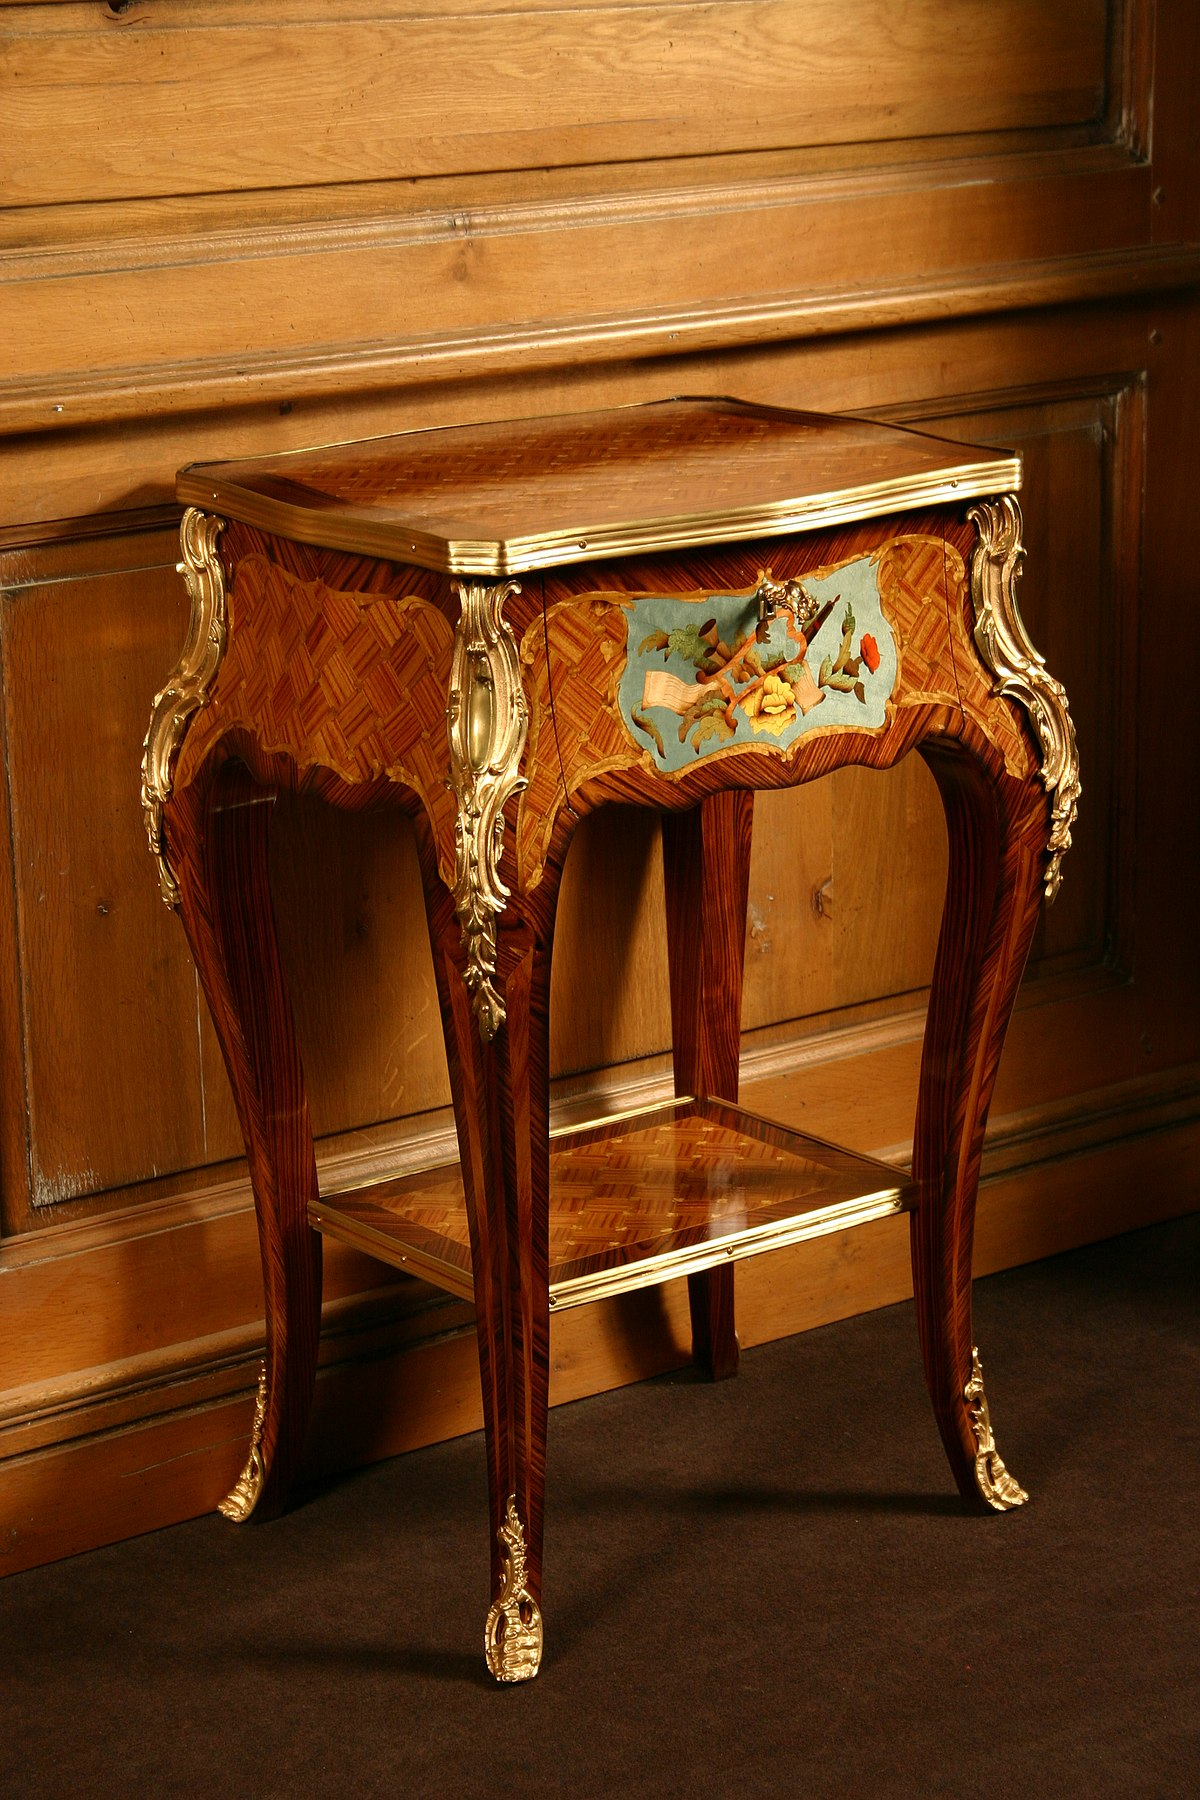 Table de chevet wikip dia - Table de chevet verre ...